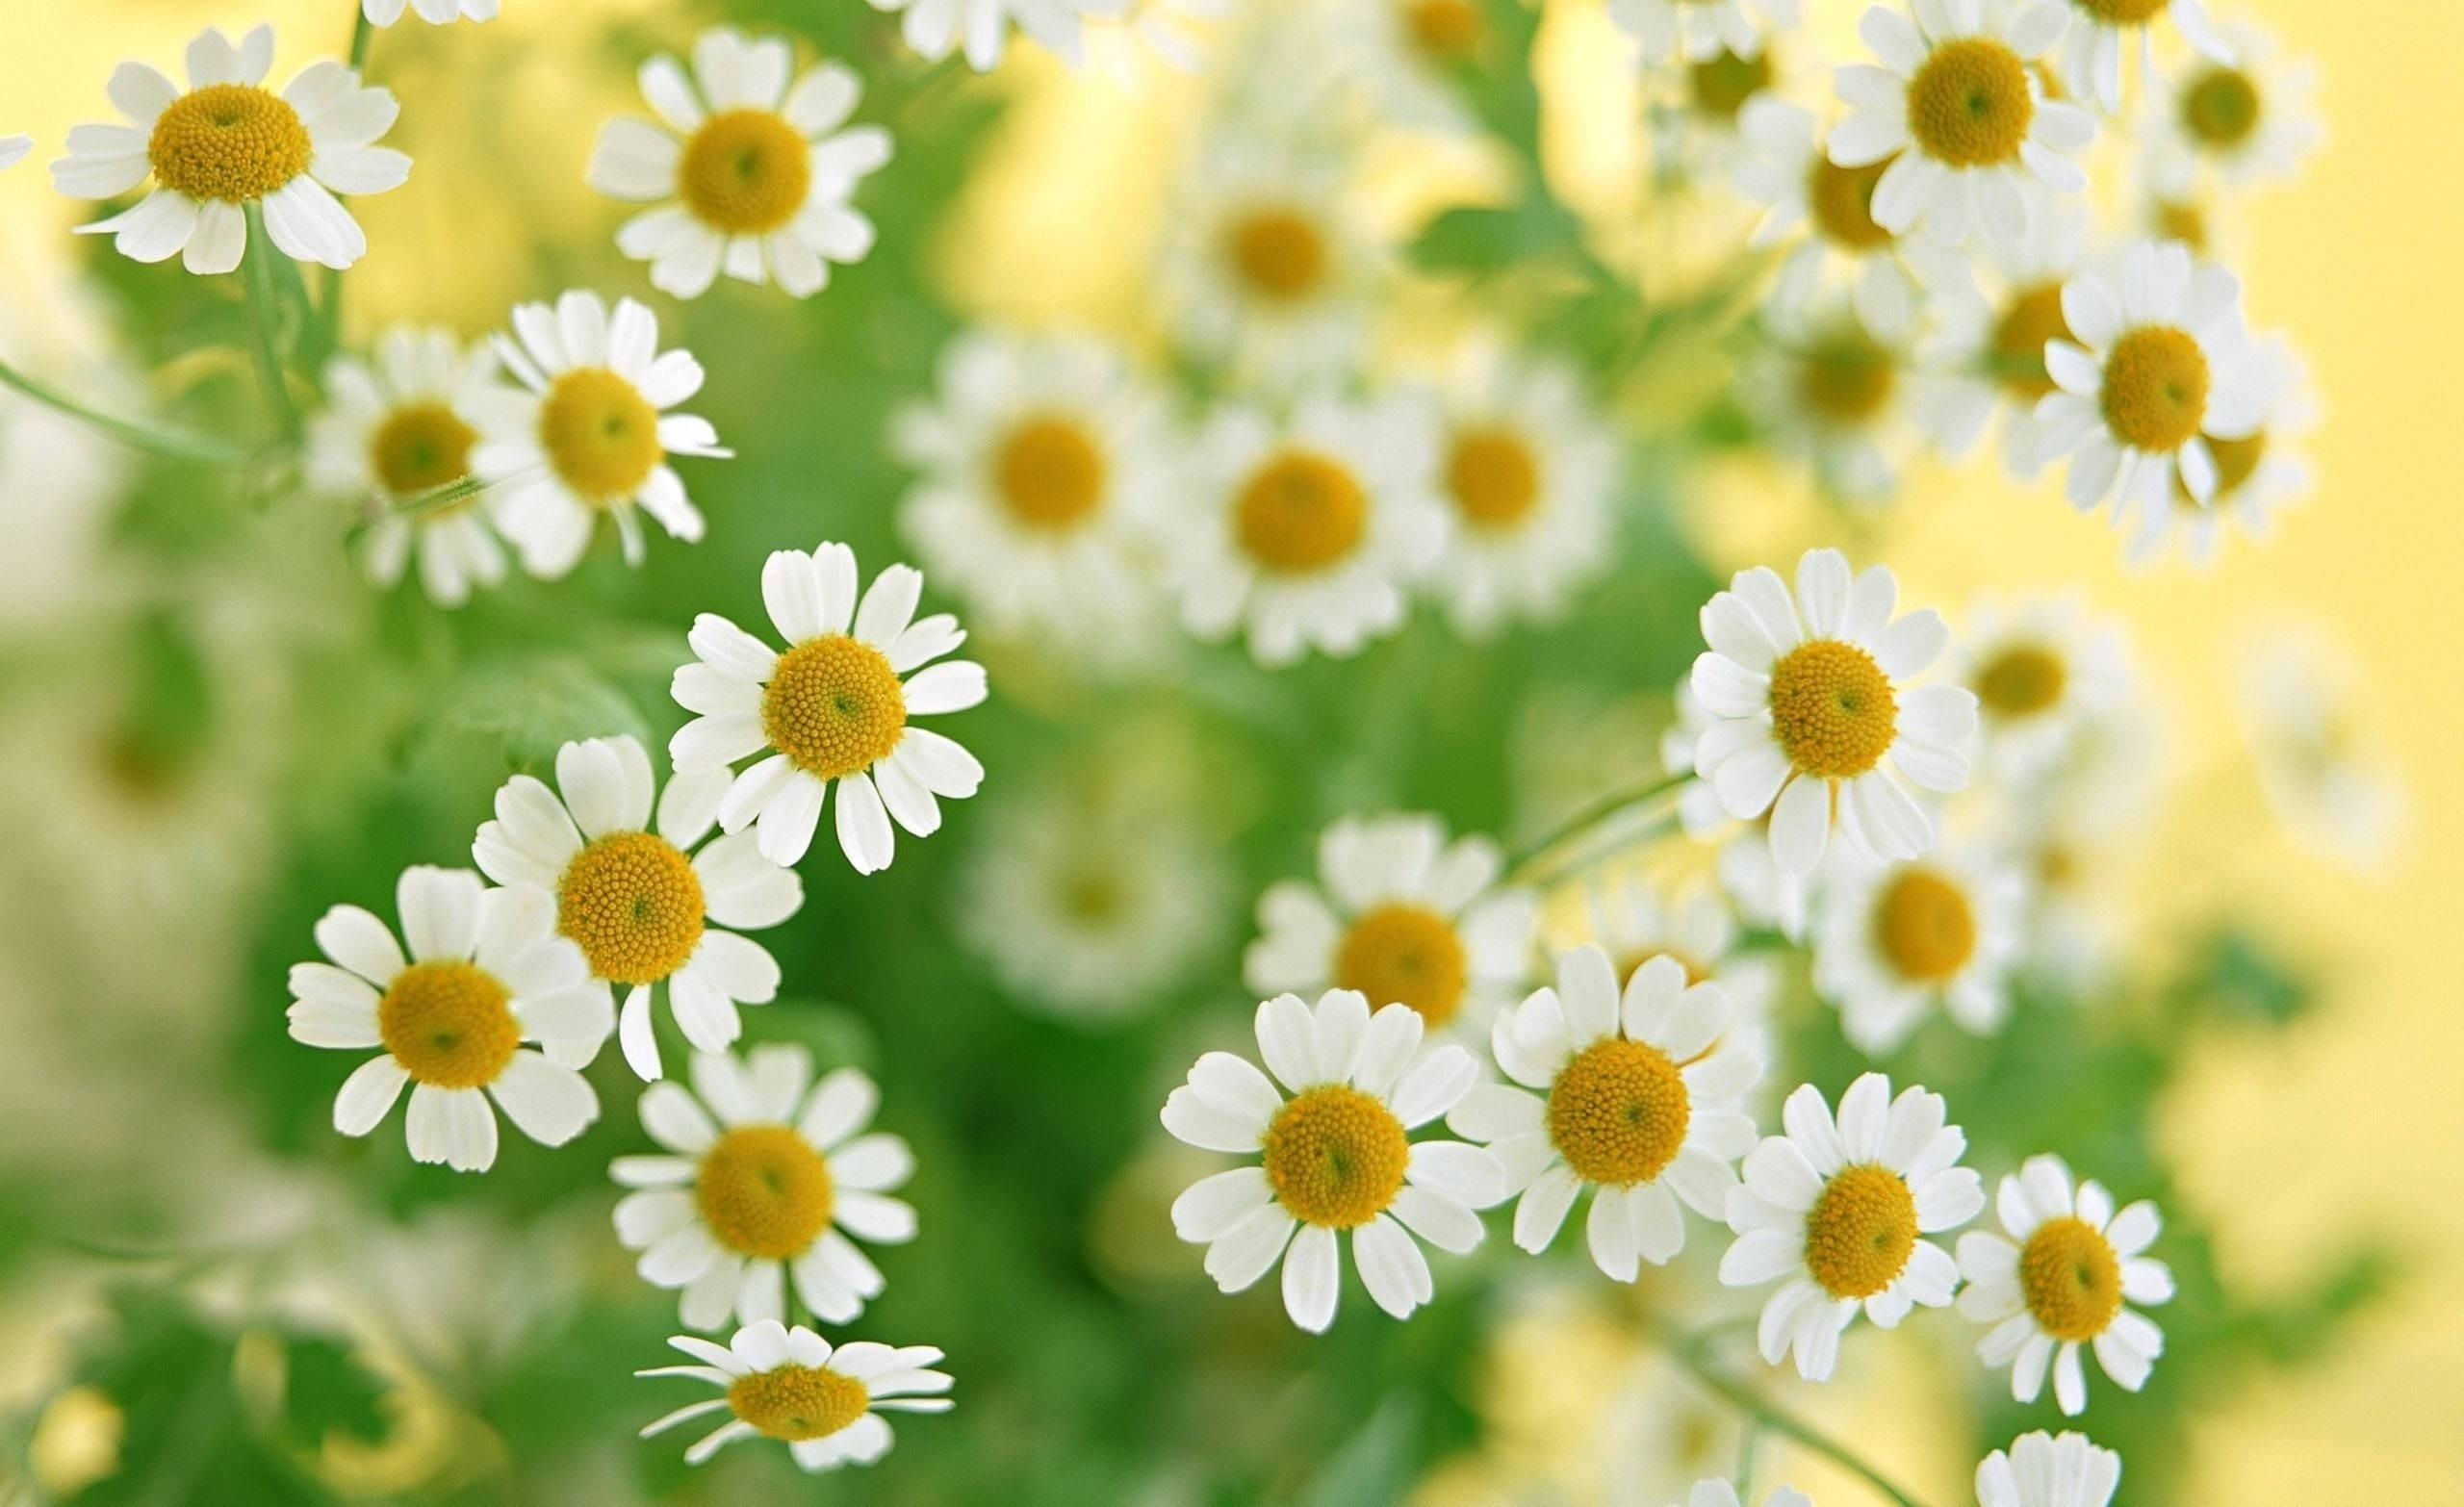 Daisy wallpapers background 79 background pictures 1920x1200 yellow daisies backgrounds 1920x1200 izmirmasajfo